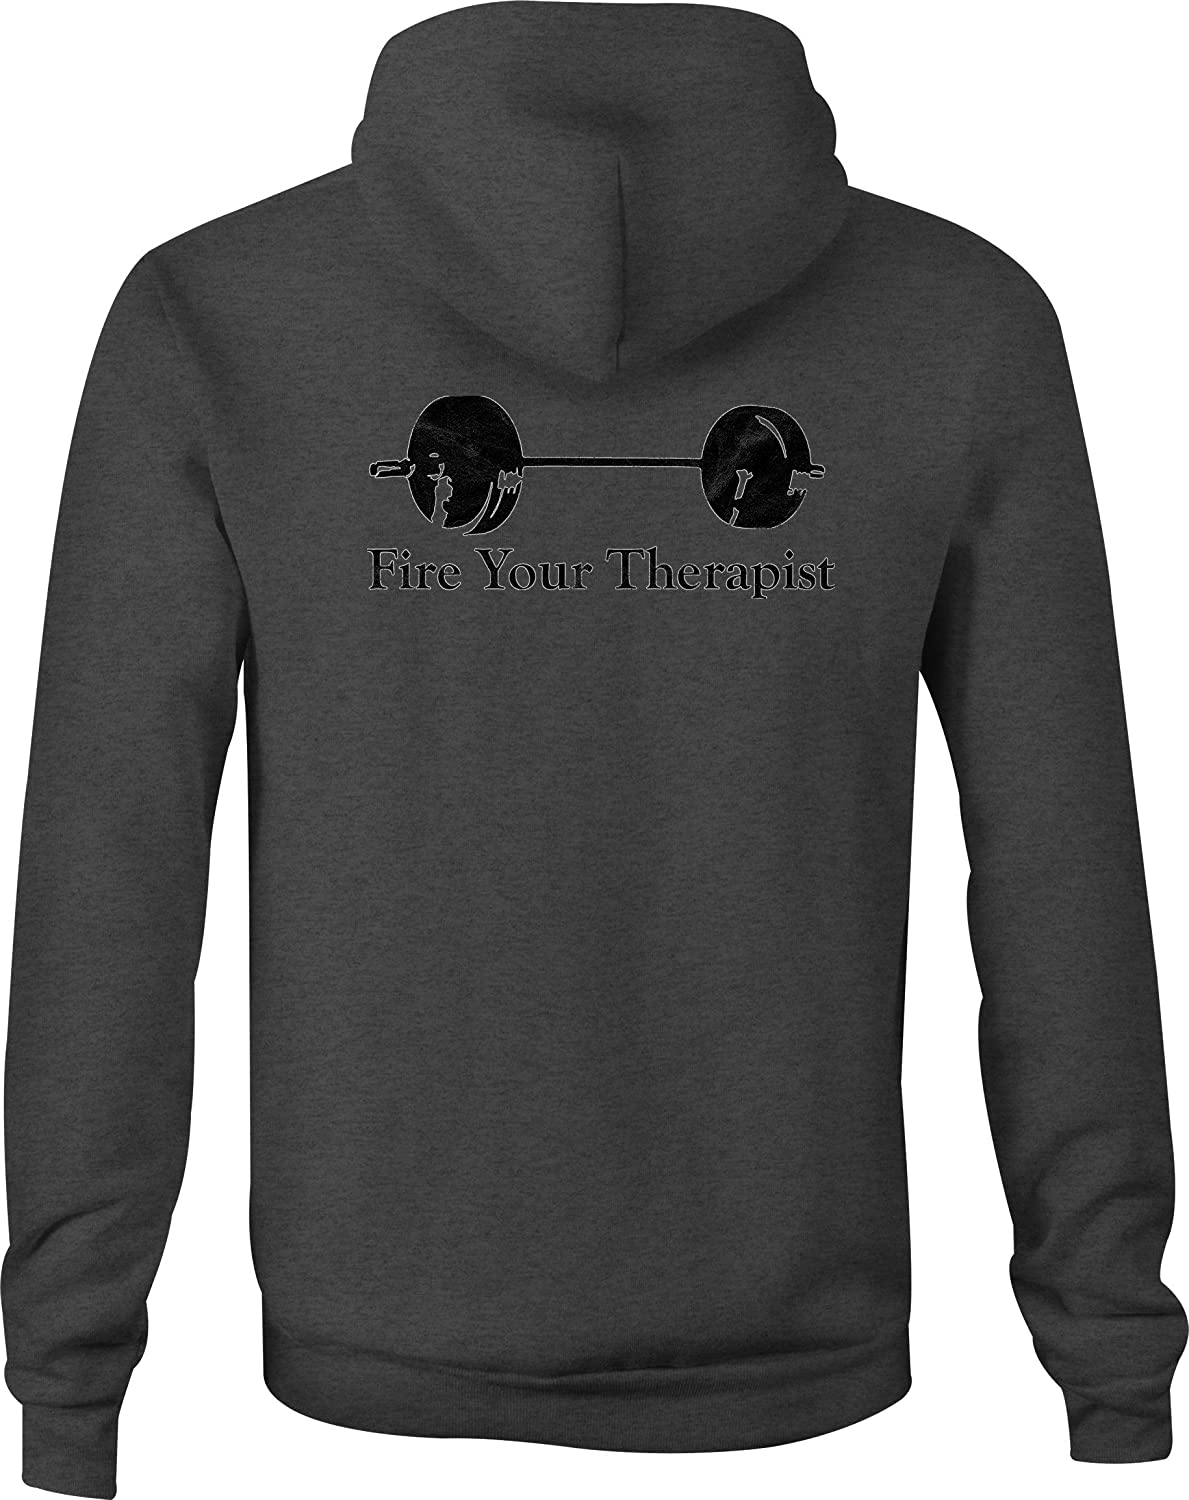 Workout Zip Up Hoodie Gym Therapy Lift Hooded Sweatshirt for Men